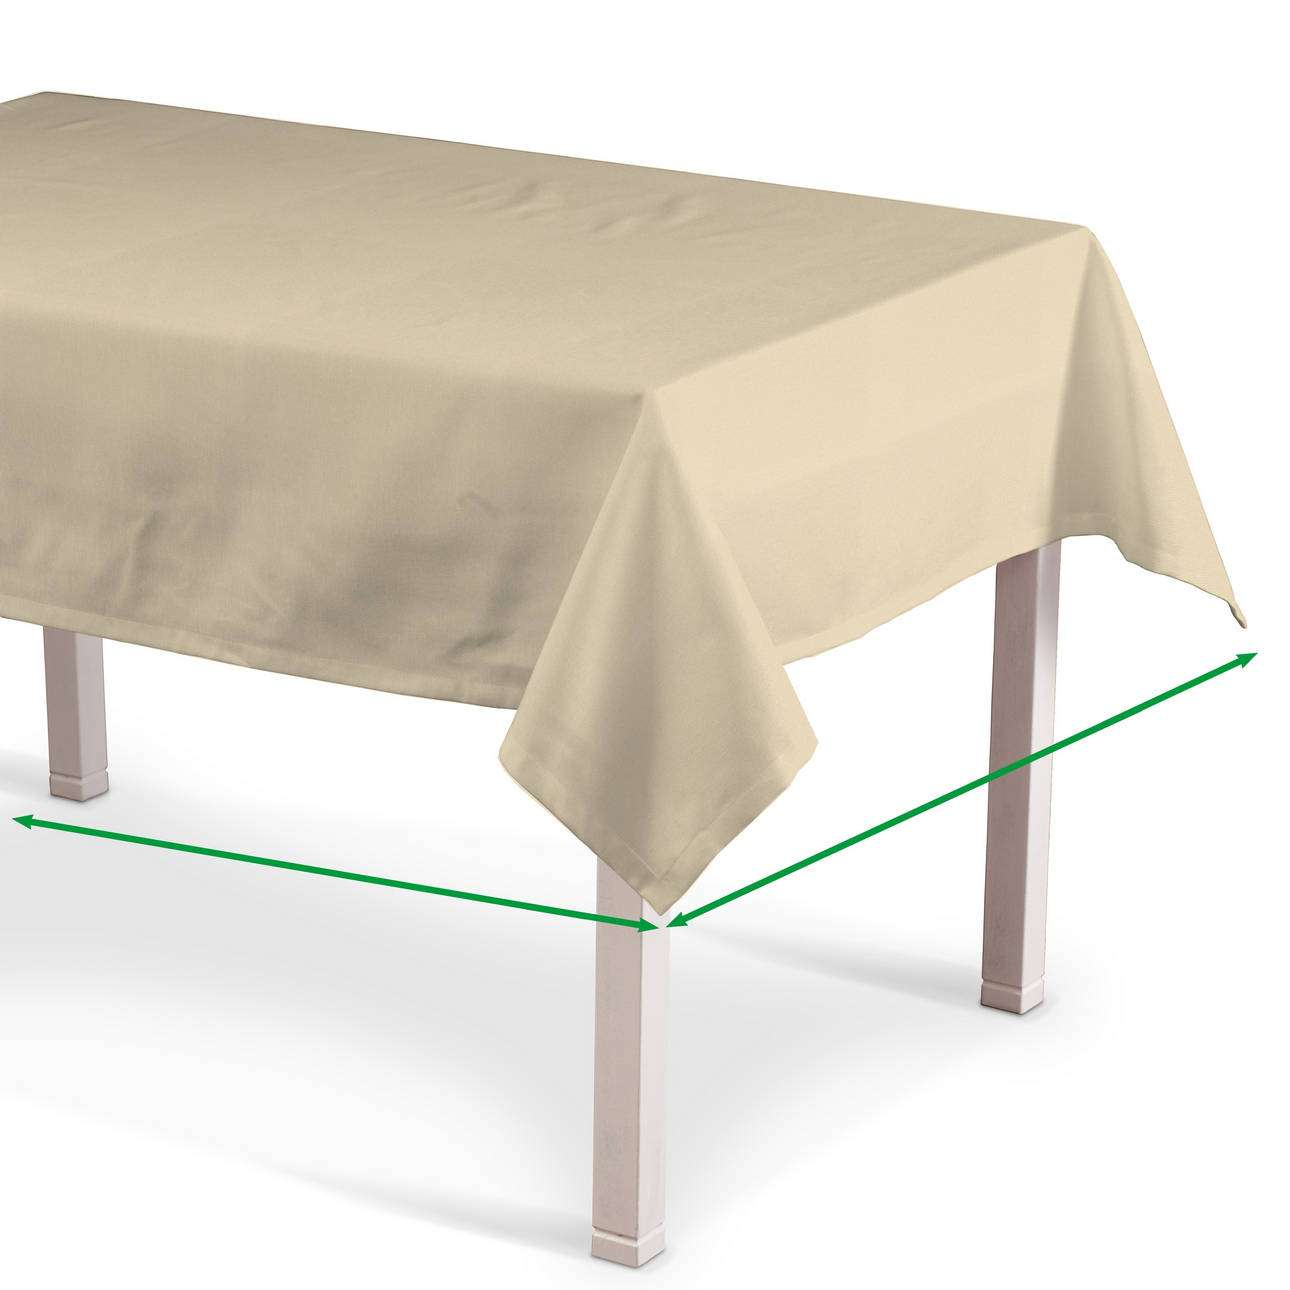 Rectangular tablecloth in collection Damasco, fabric: 141-73